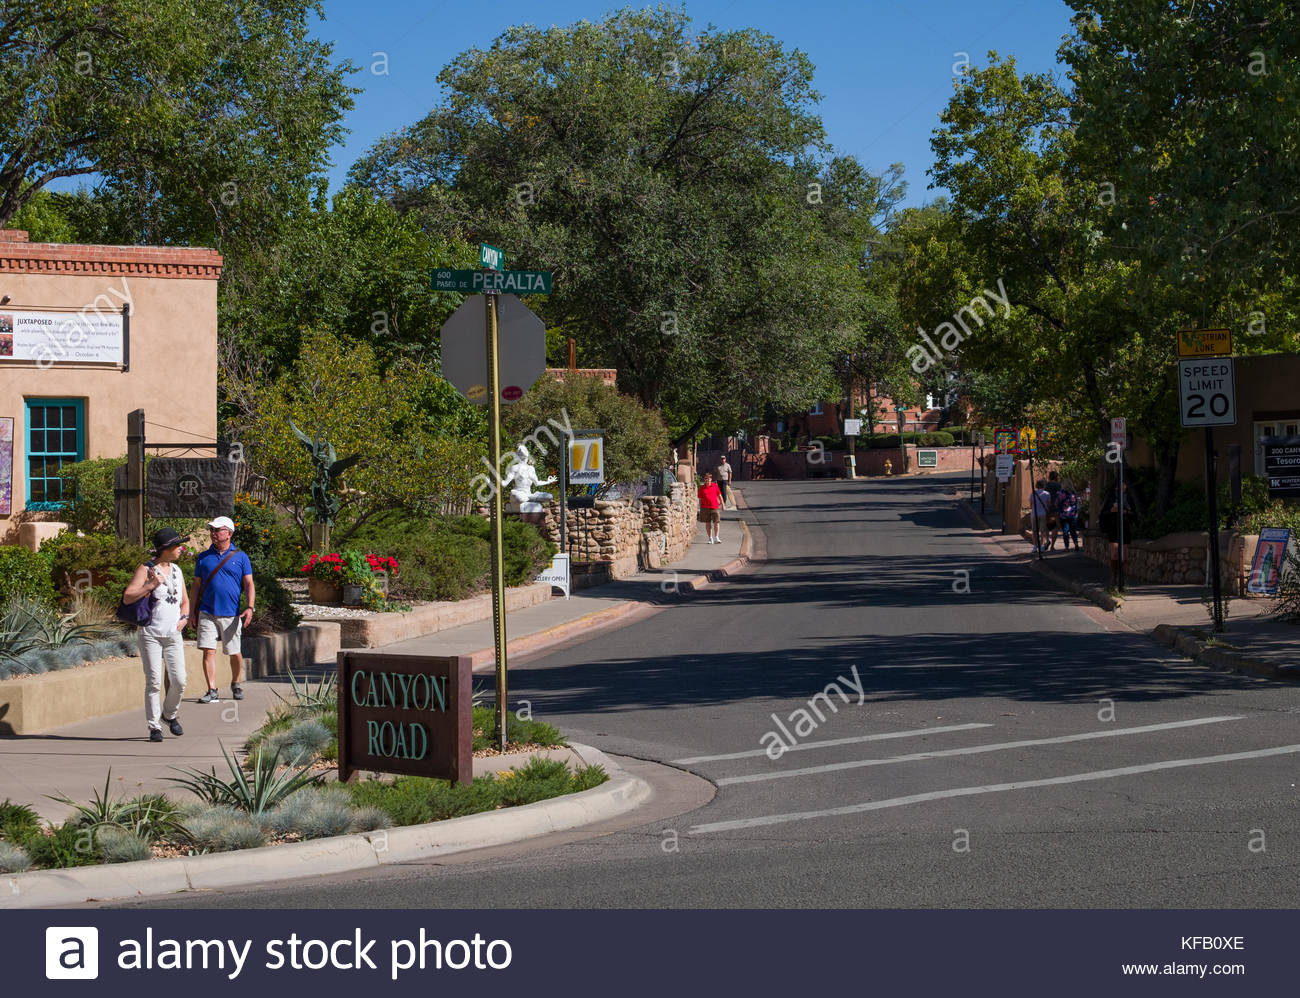 canyon county hindu single men Quickfacts canyon county, idaho united states quickfacts provides statistics for all states and counties, and for cities and towns with a population of 5,000 or more.